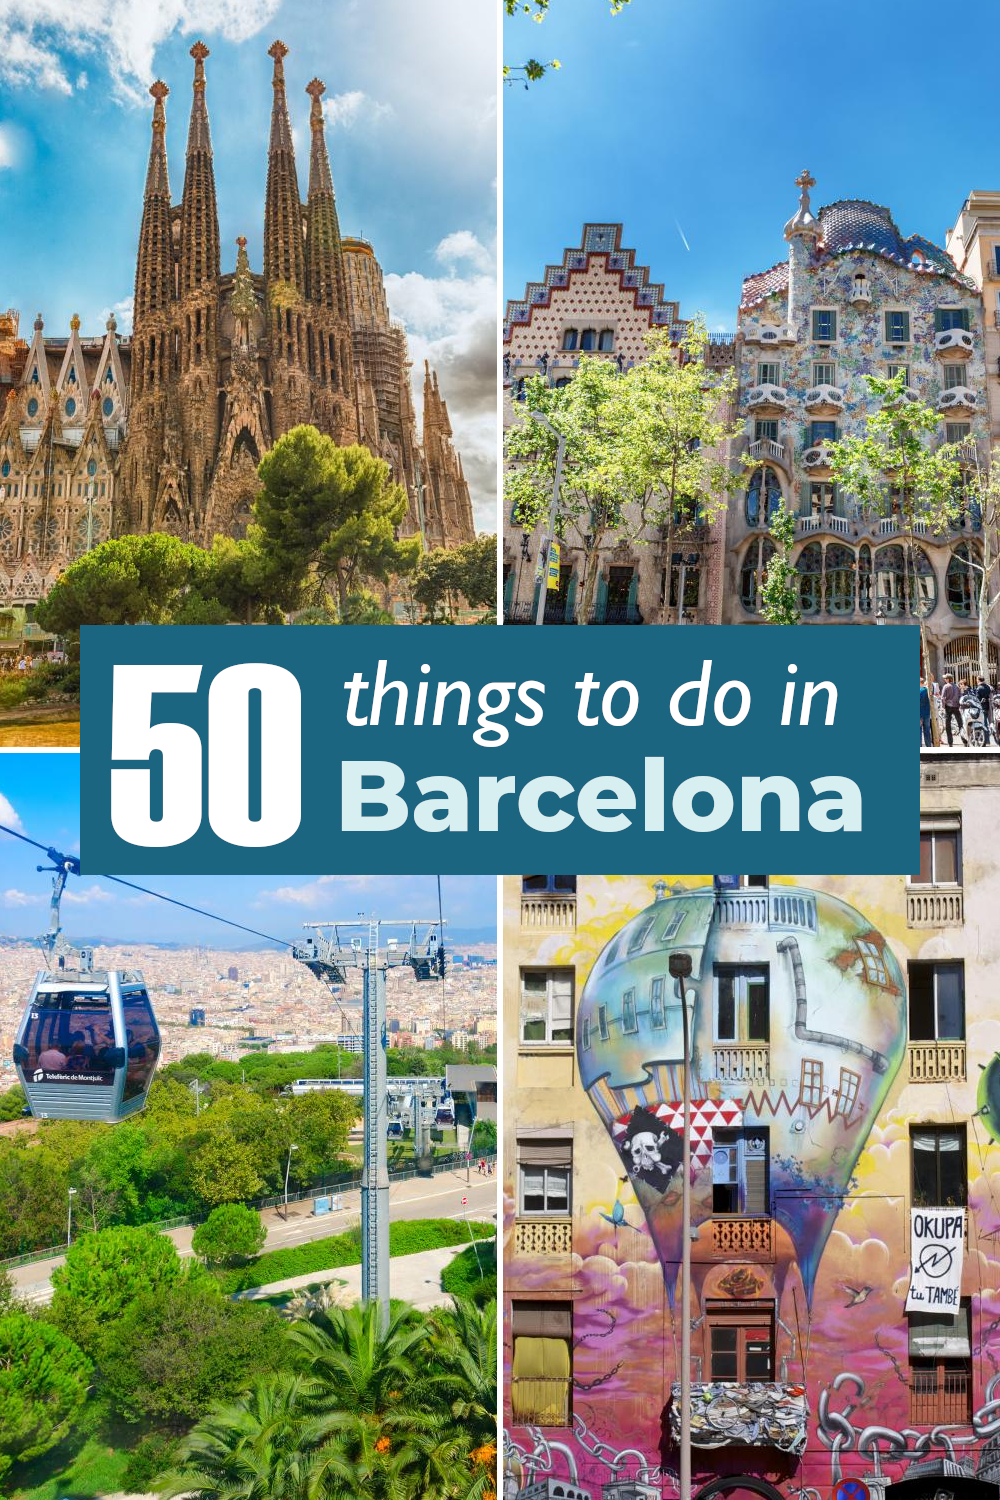 50 best things to do in Barcelona from museums and achitectural marvels to neighborhoods and best views of the city